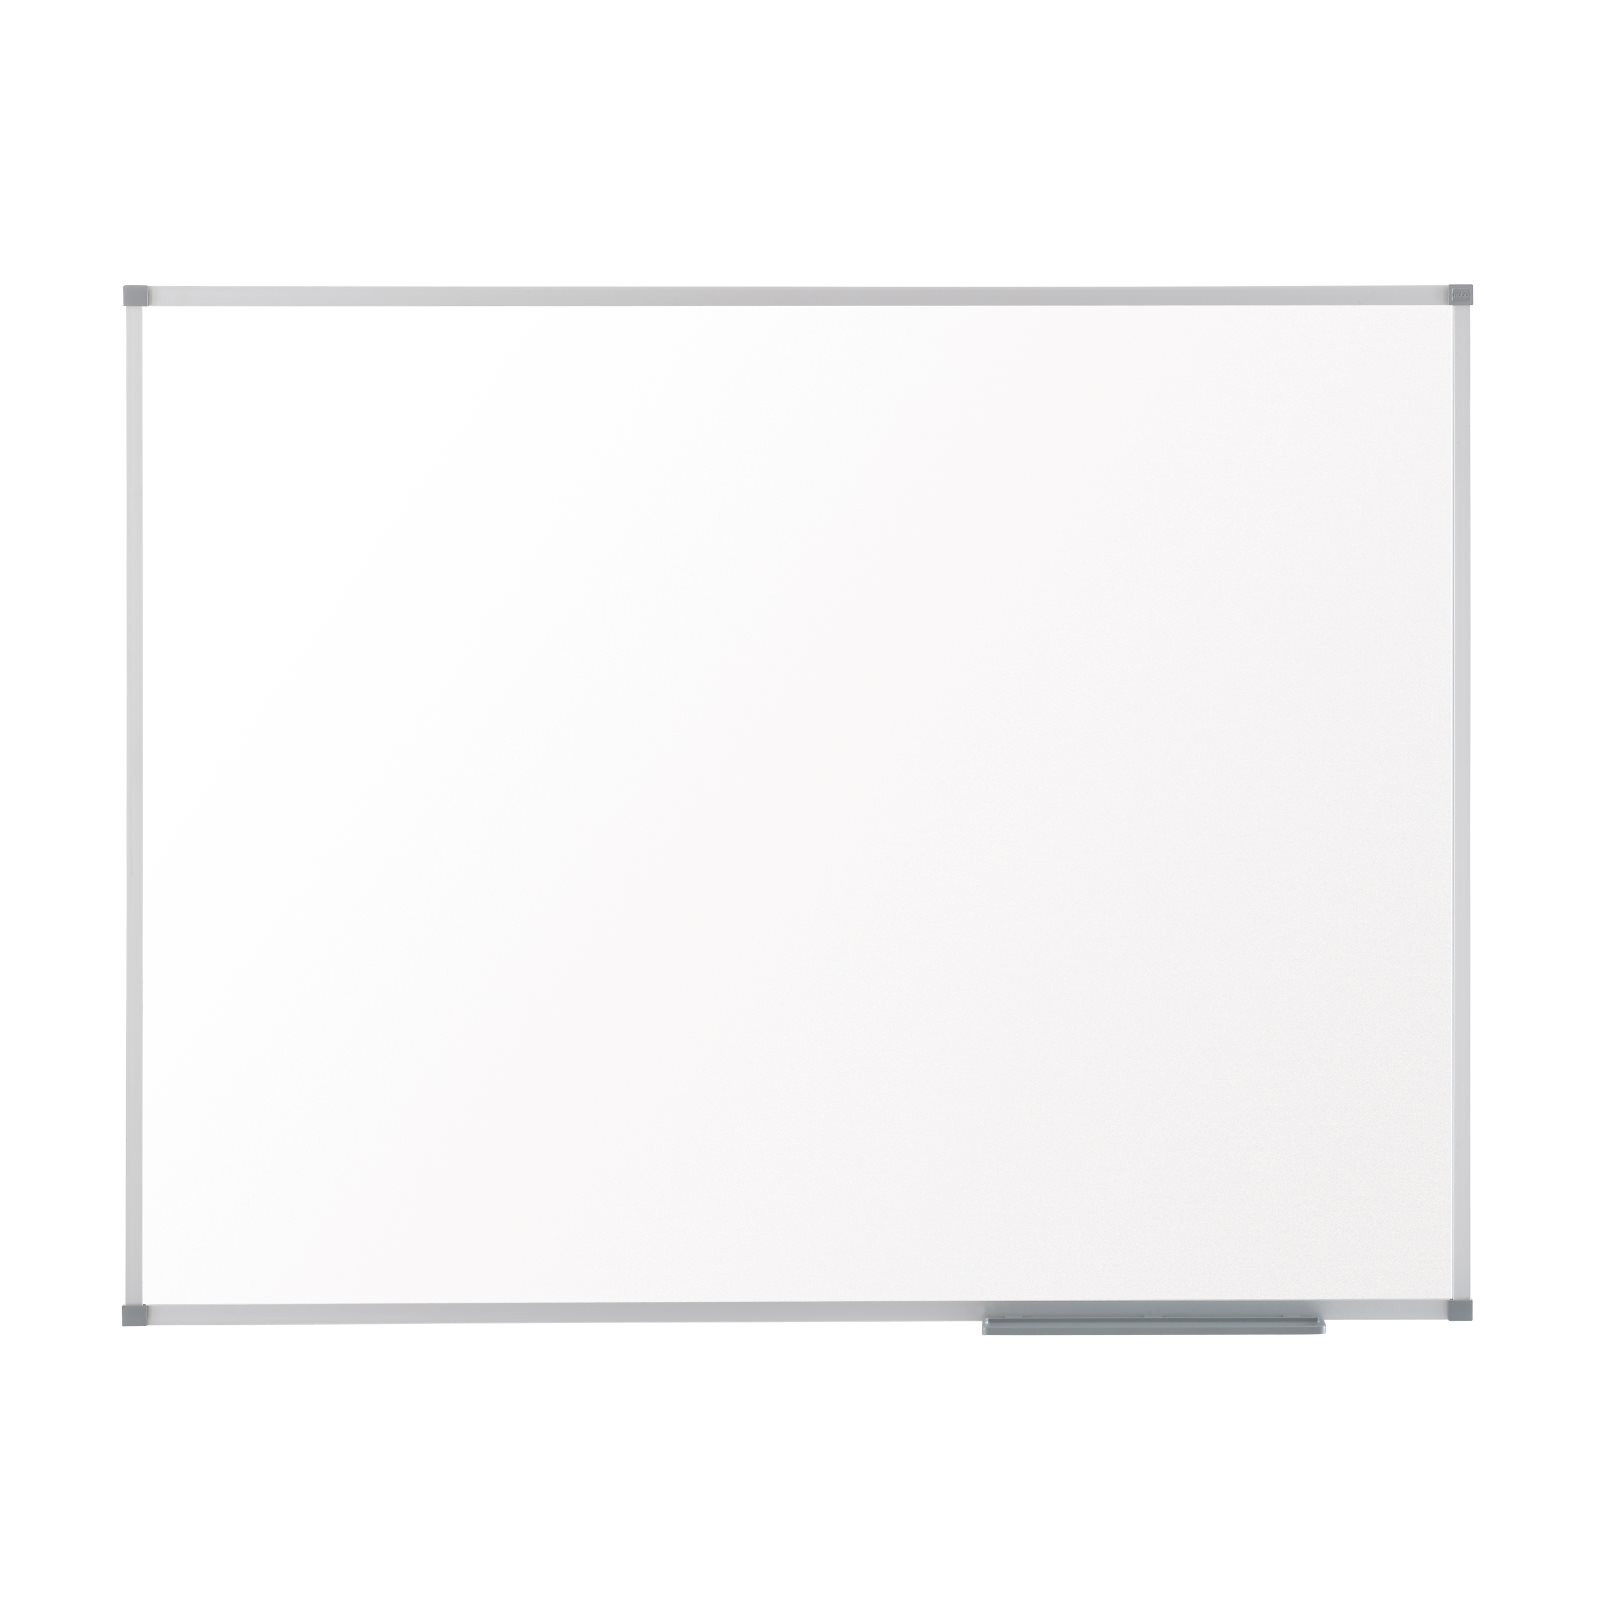 NOBO 1905209 BASIC STEEL MAGNETIC WHITEBOARD 600X450MM WITH TRIM